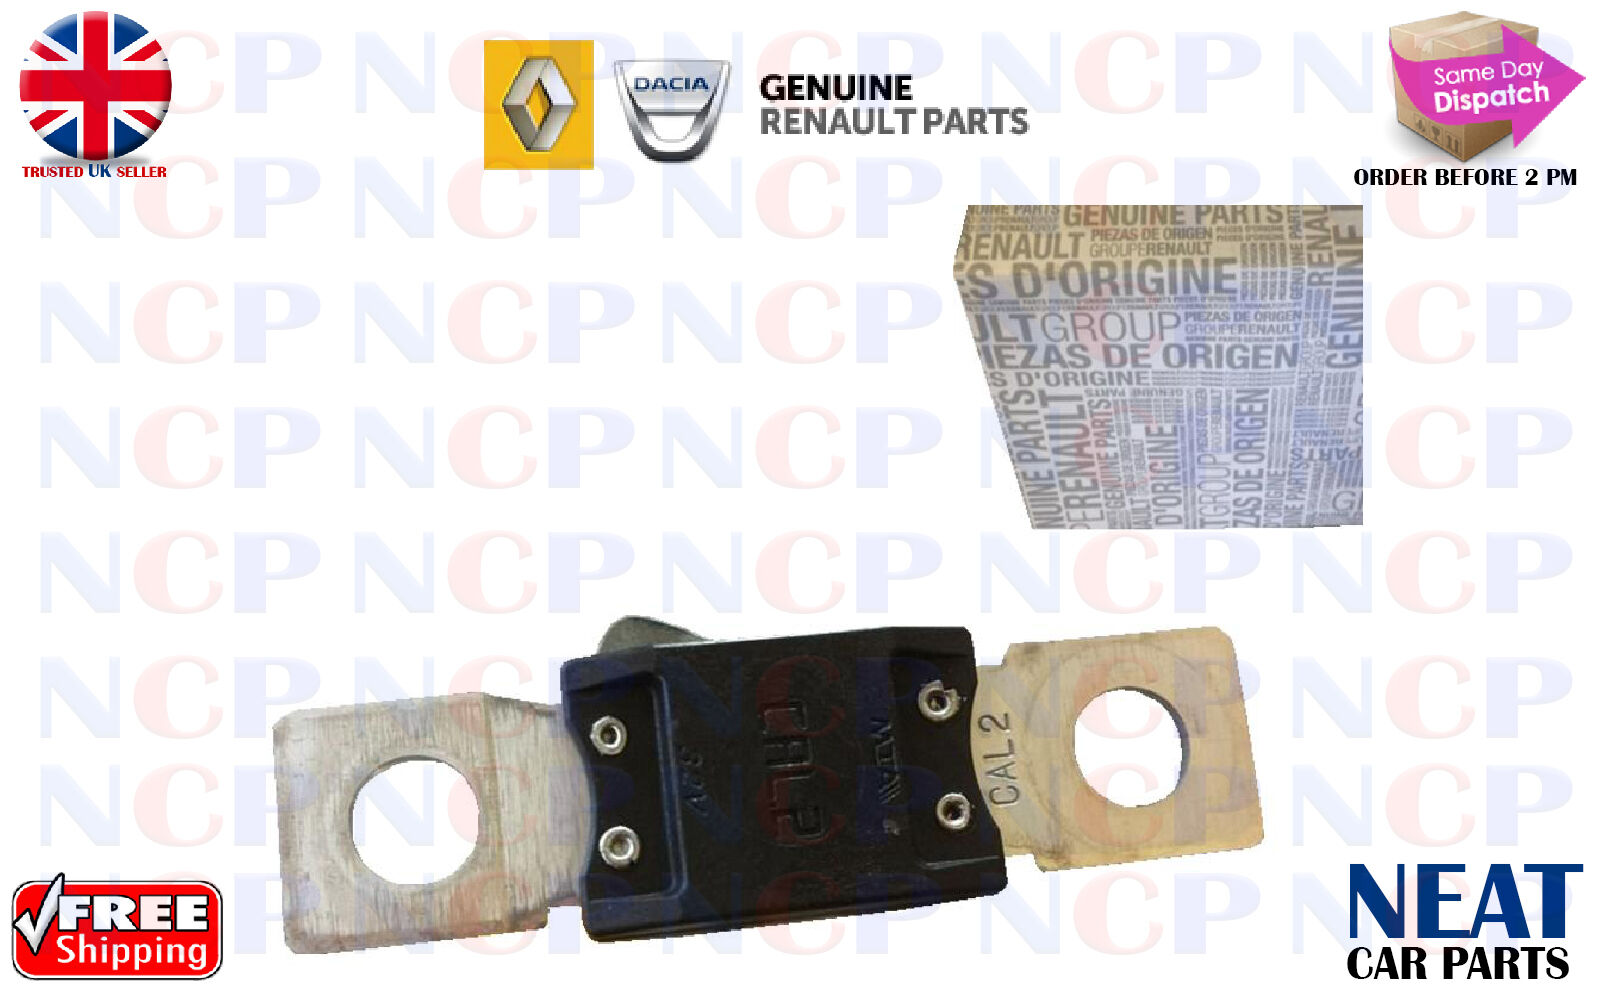 Renault Scenic Kangoo Master Trafic Battery Fuse Link Connector Cal2 Water In Box 8200177920 1 Of 1free Shipping